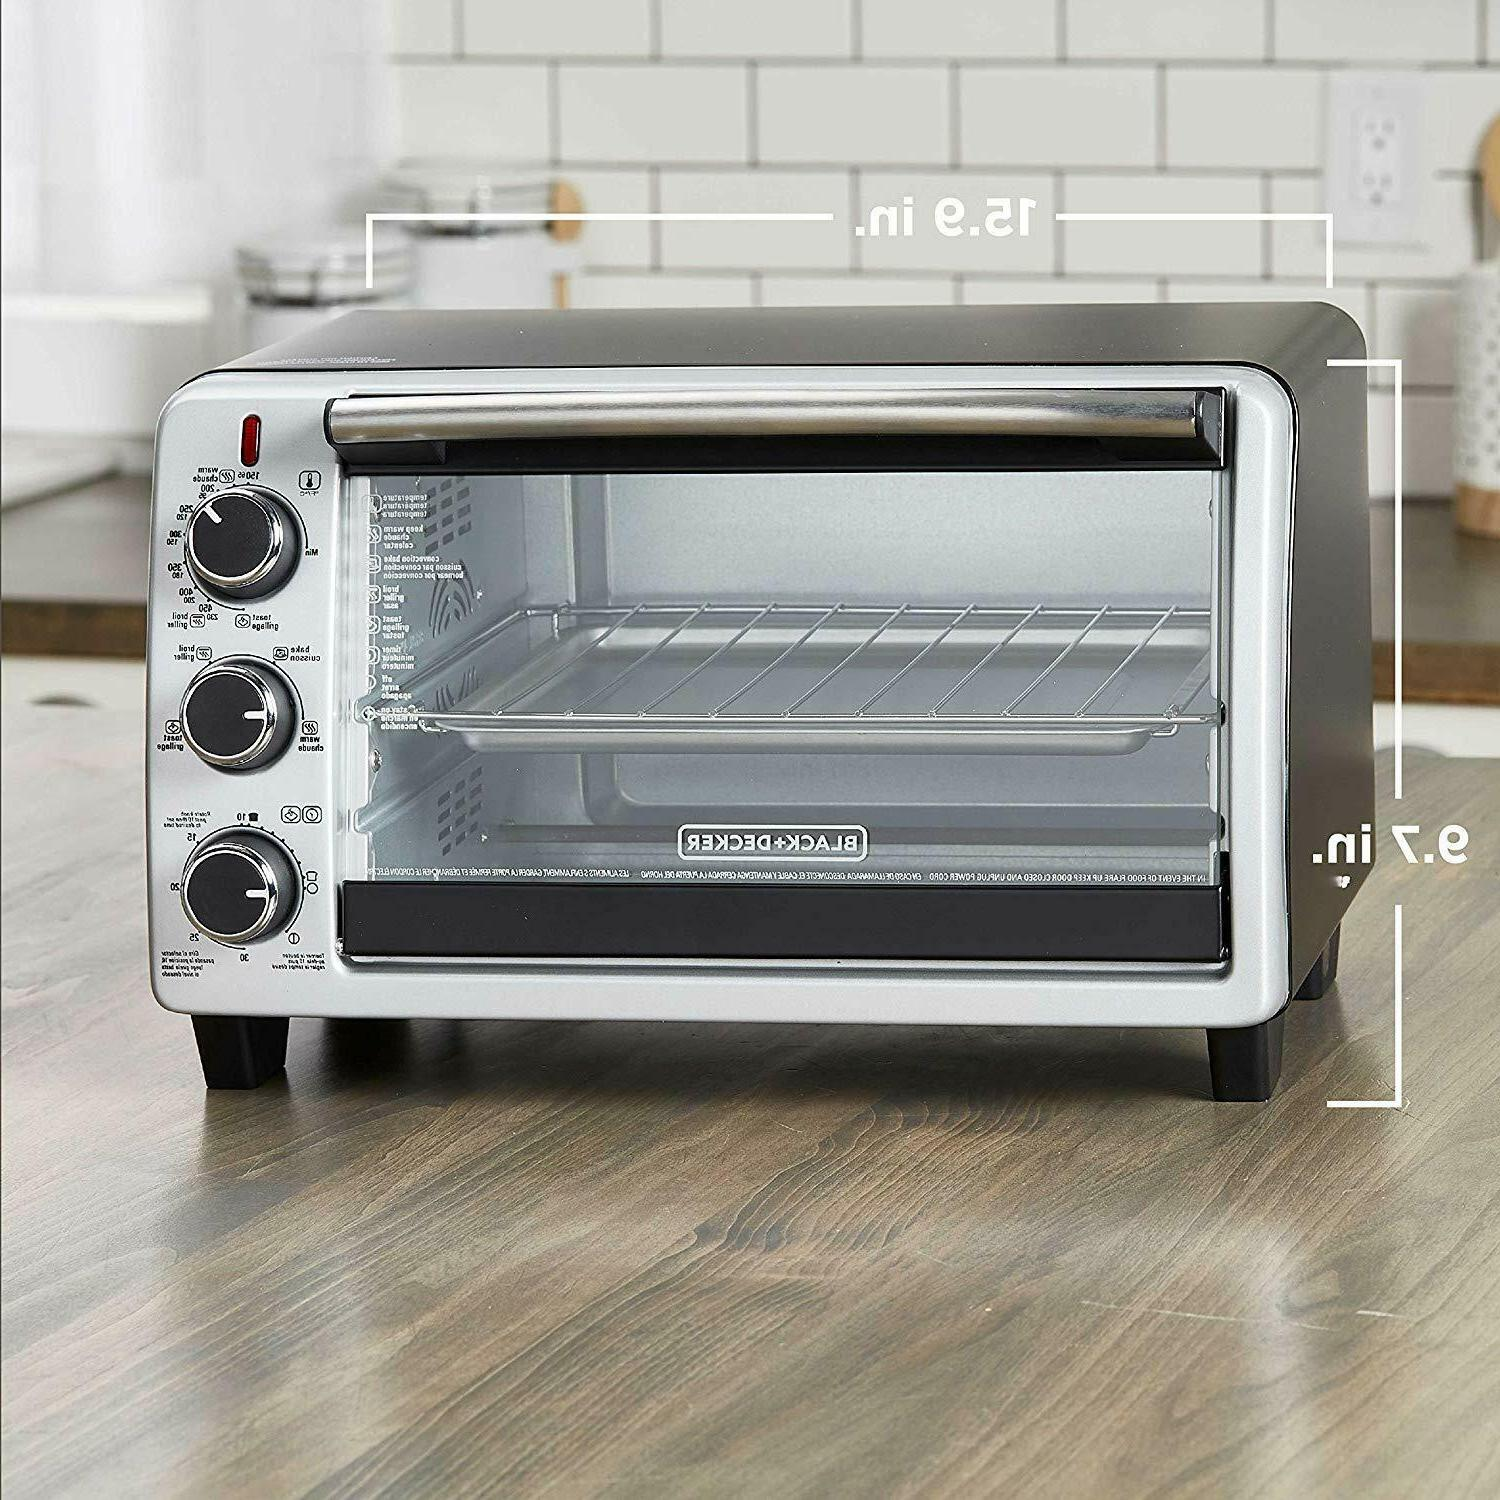 CONVECTION OVEN Toaster Broiling